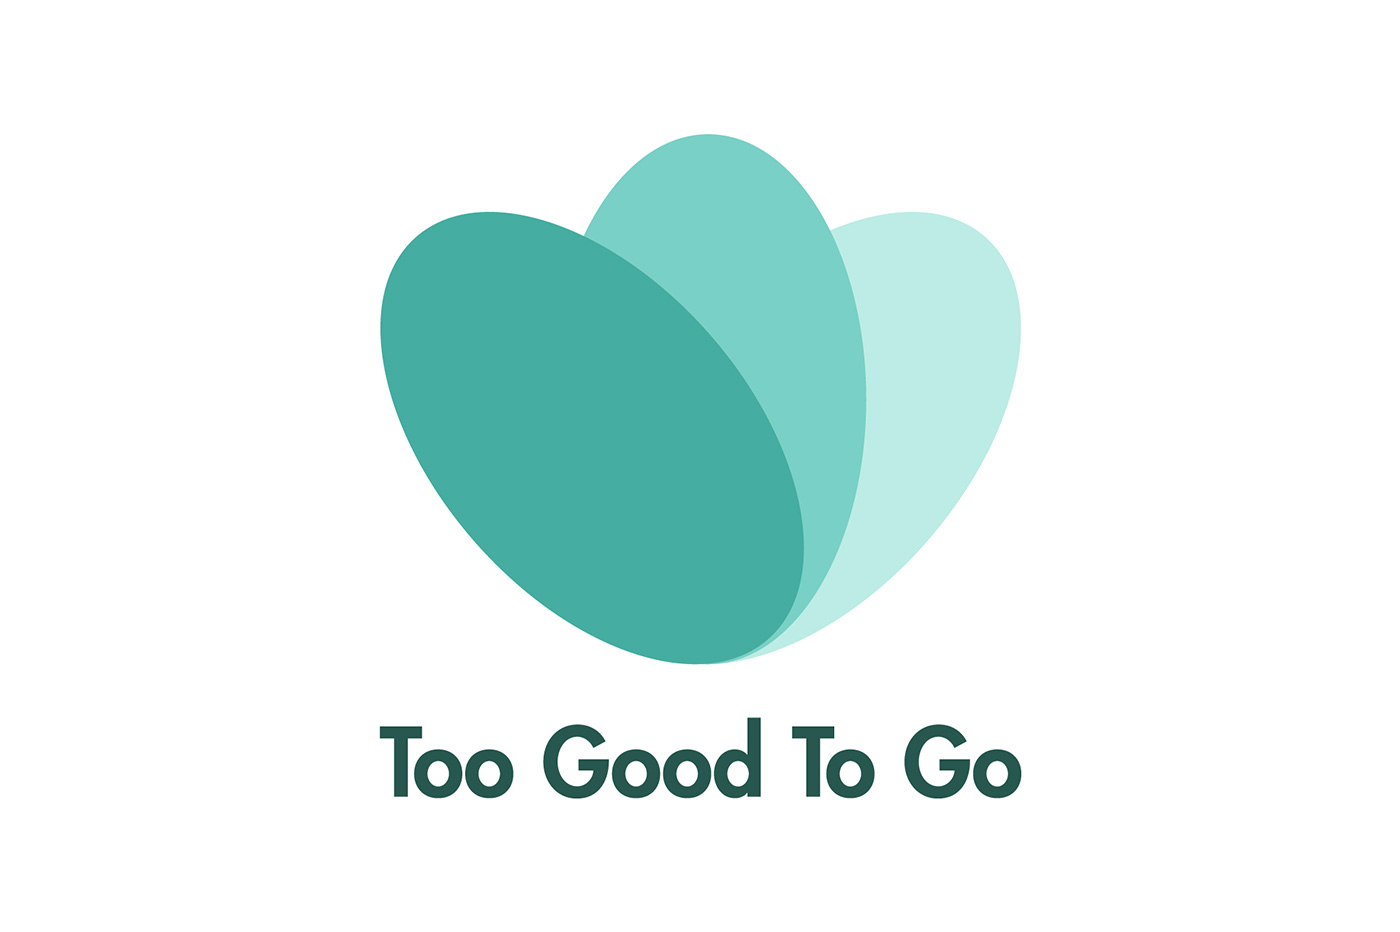 Too Good To Go logo